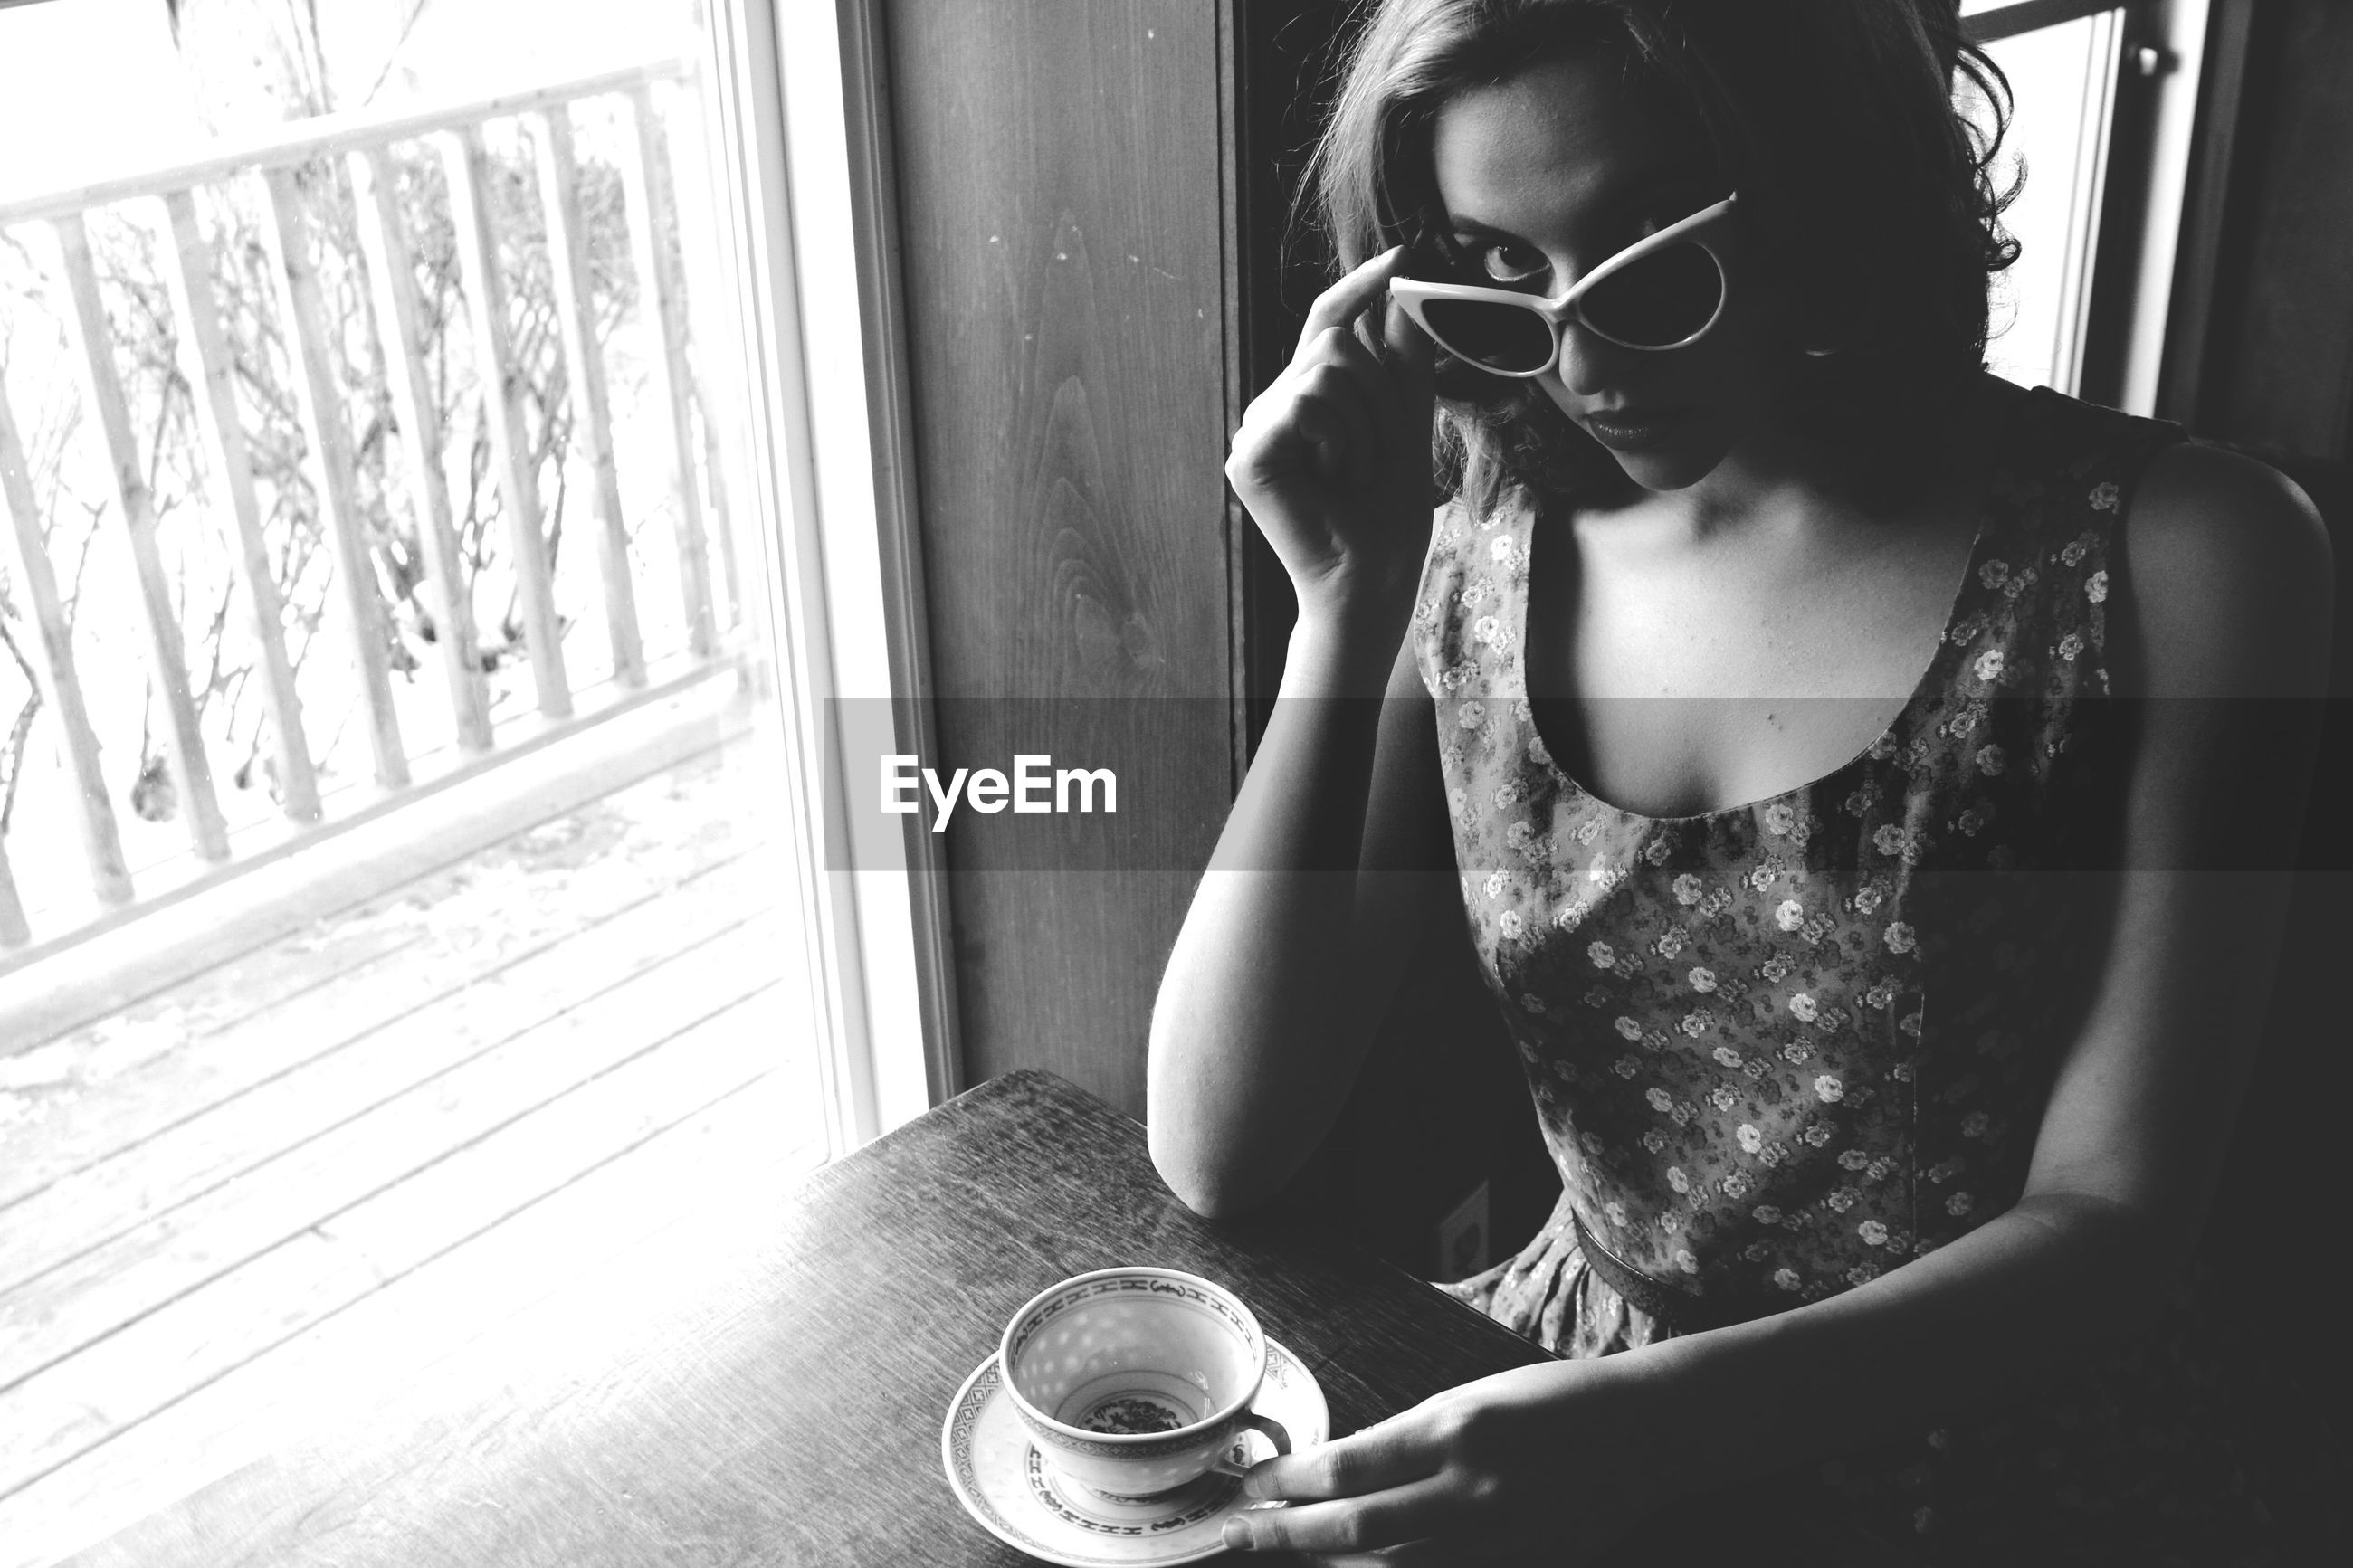 indoors, window, home interior, young adult, sitting, young women, lifestyles, person, front view, glass - material, sunglasses, domestic room, window sill, house, day, domestic life, looking at camera, casual clothing